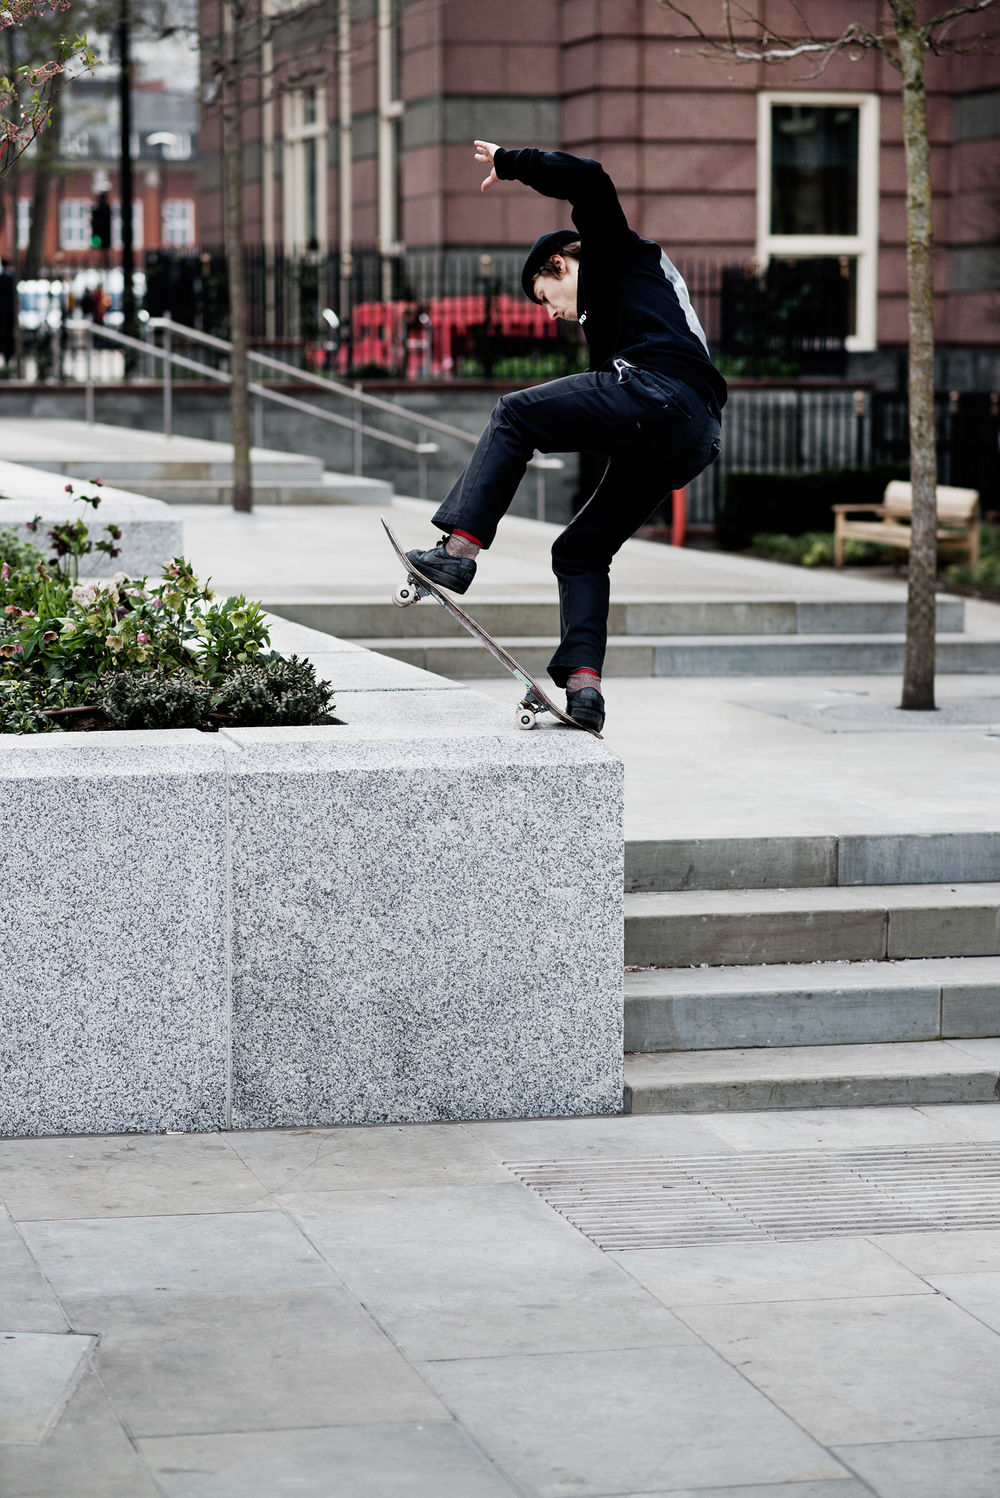 dan_west_front_blunt_fakie_grey_henry_kingsford_final_updated